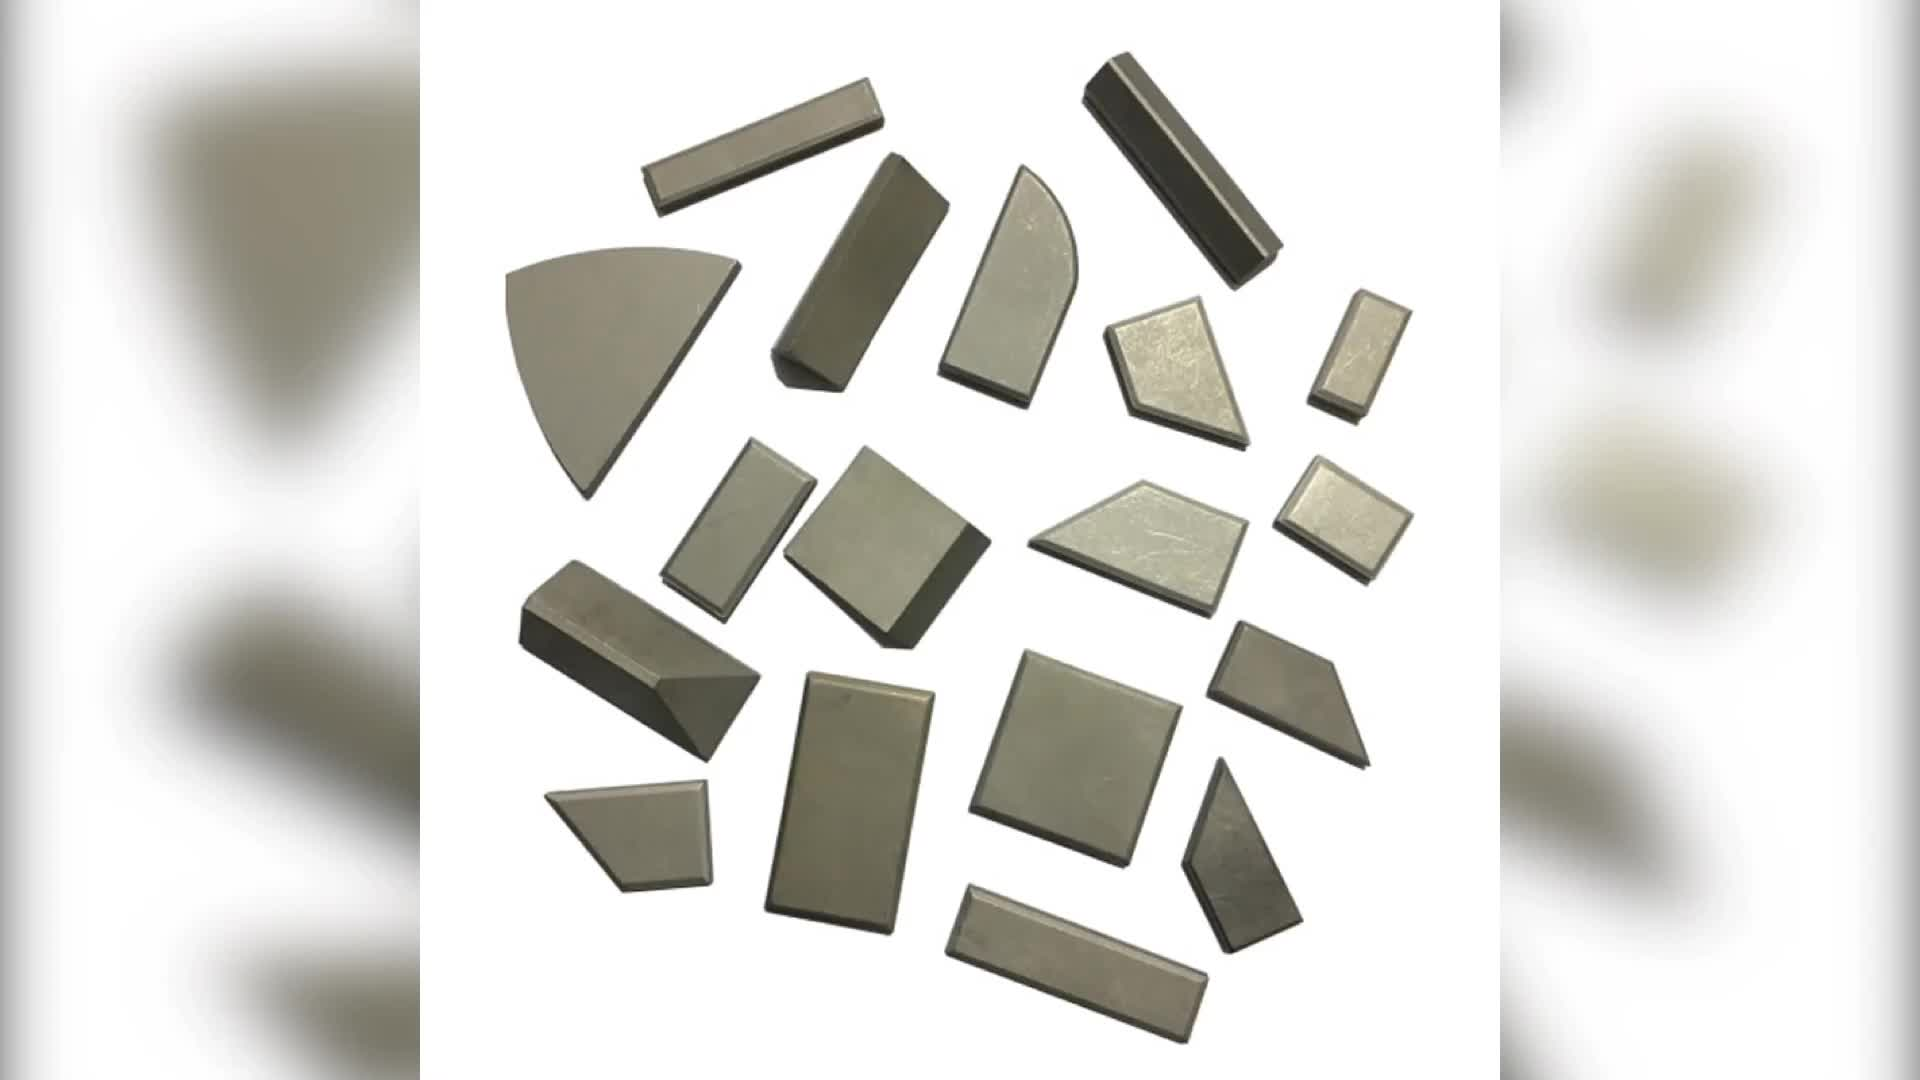 Tungsten carbide points with different size for agriculture soil preparation